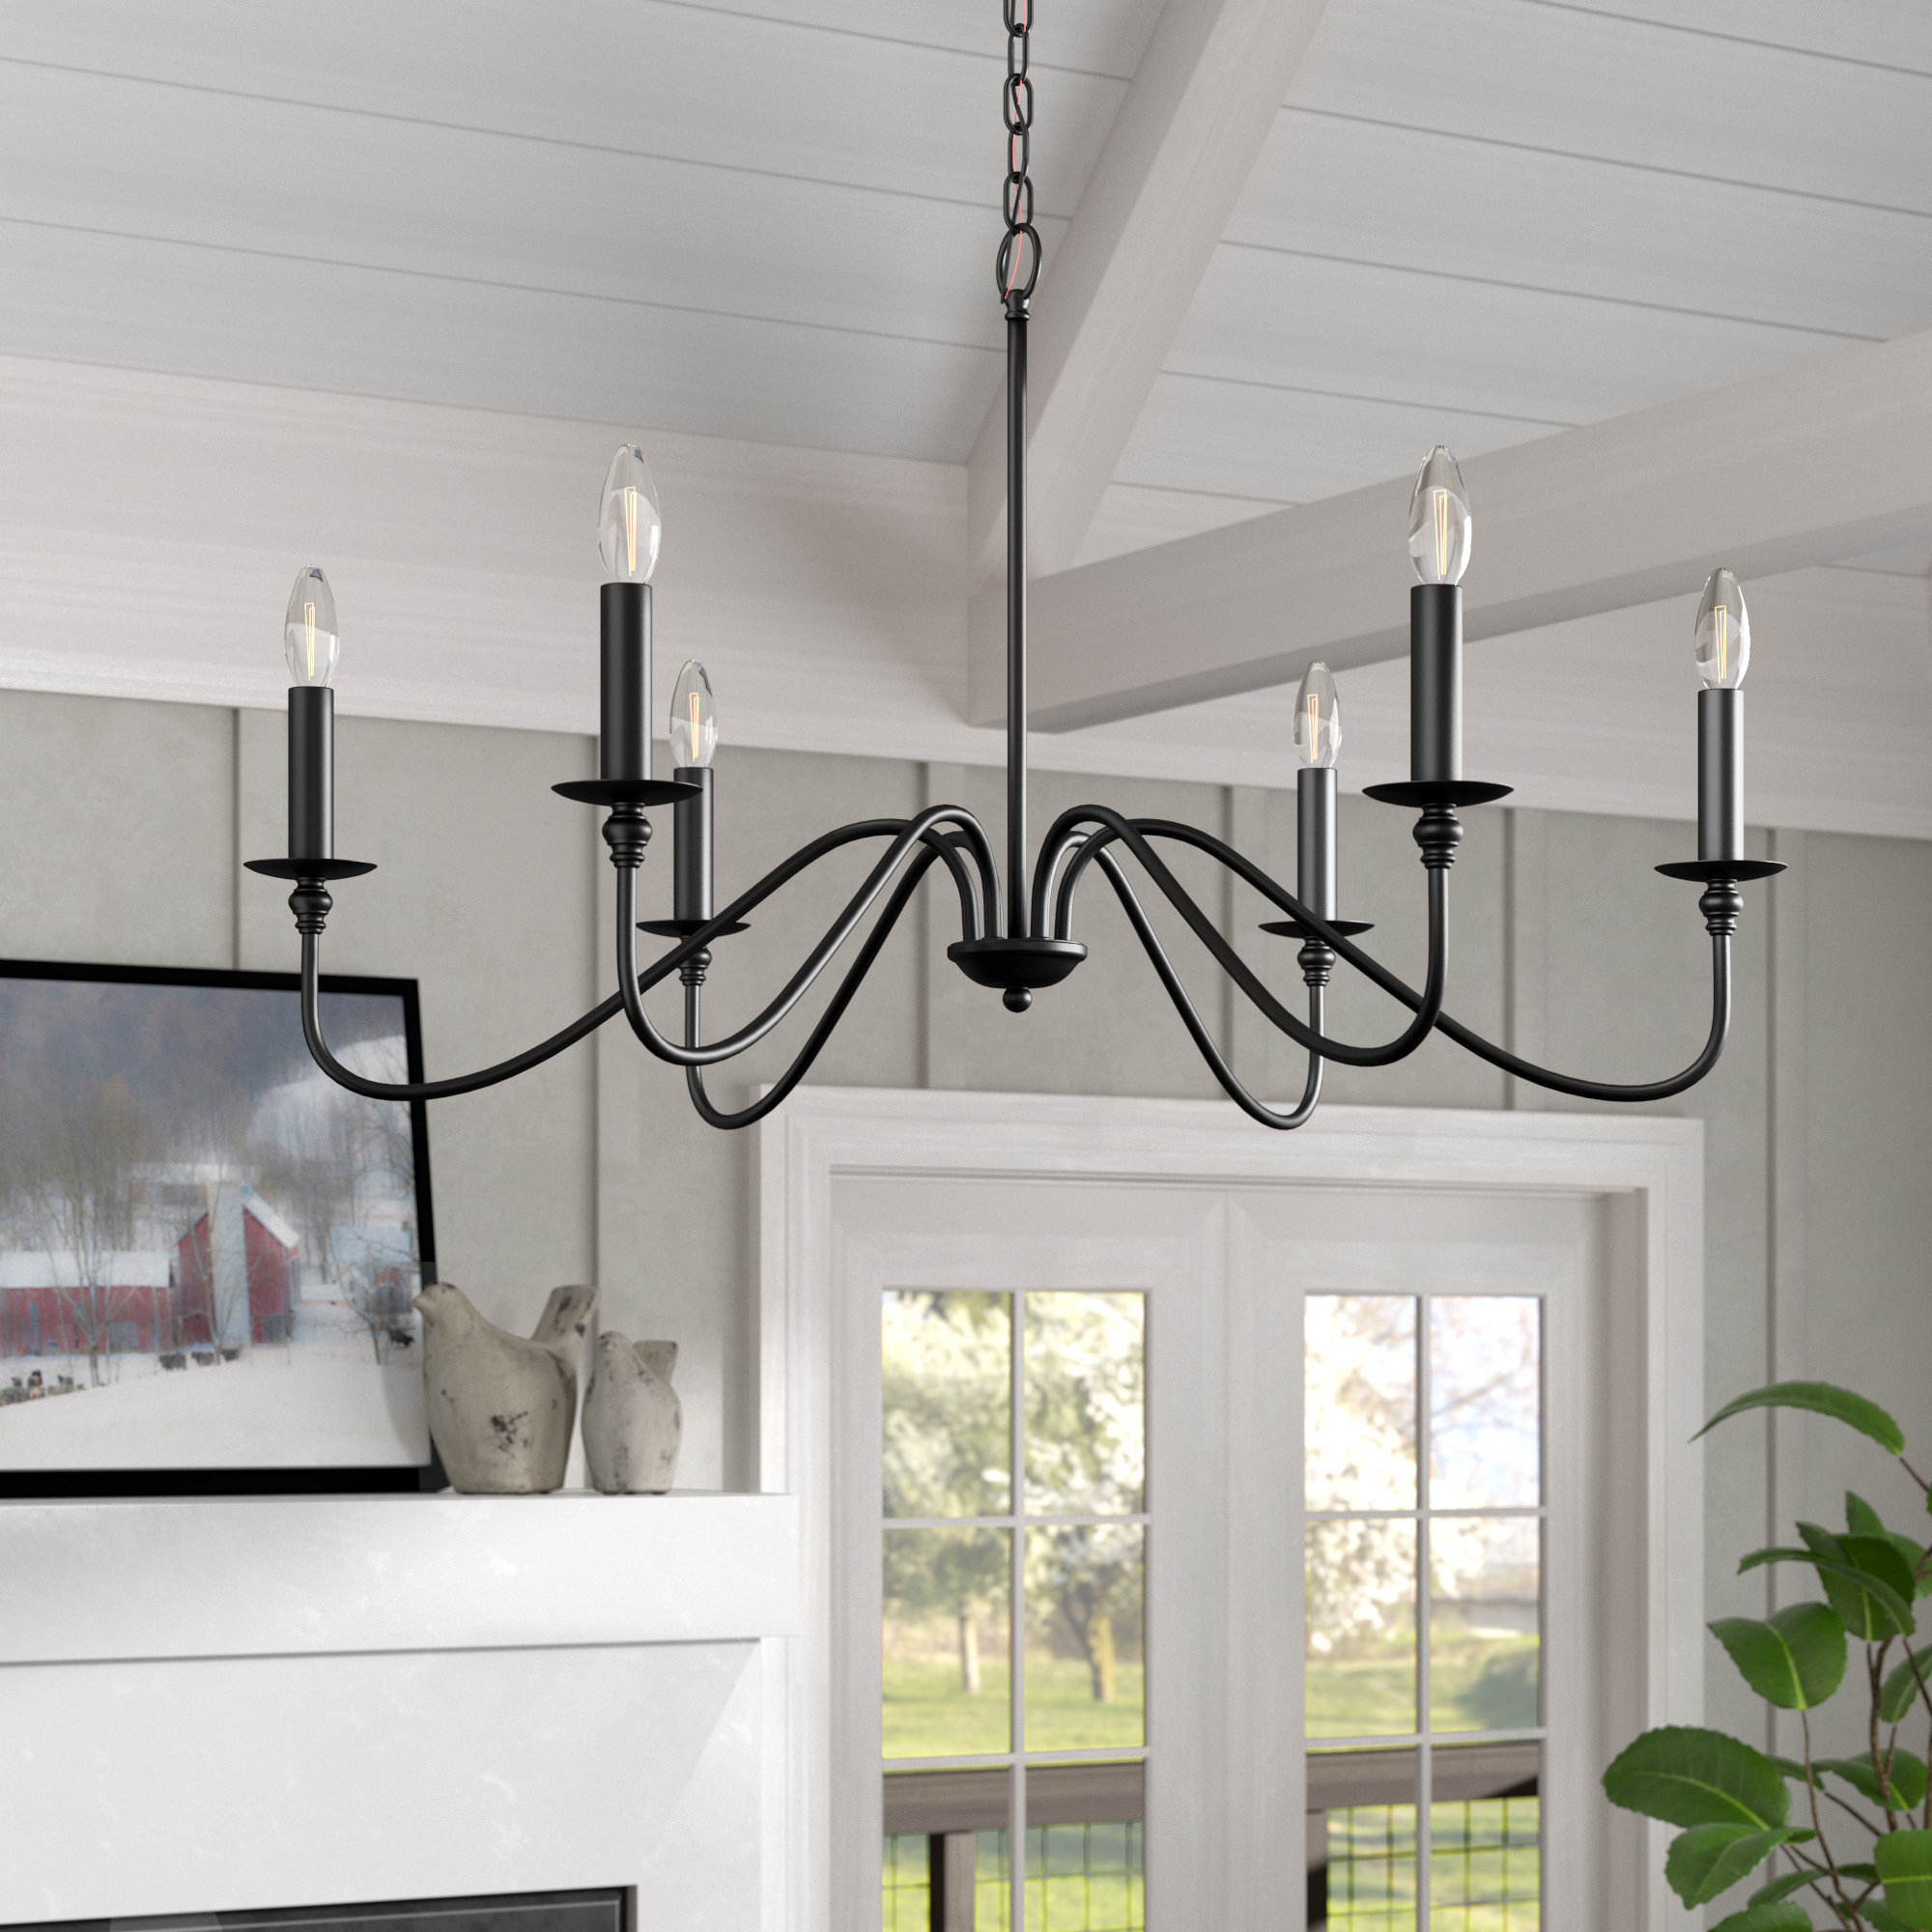 Hamza 6 Light Candle Style Chandelier For Widely Used Diaz 6 Light Candle Style Chandeliers (View 17 of 20)